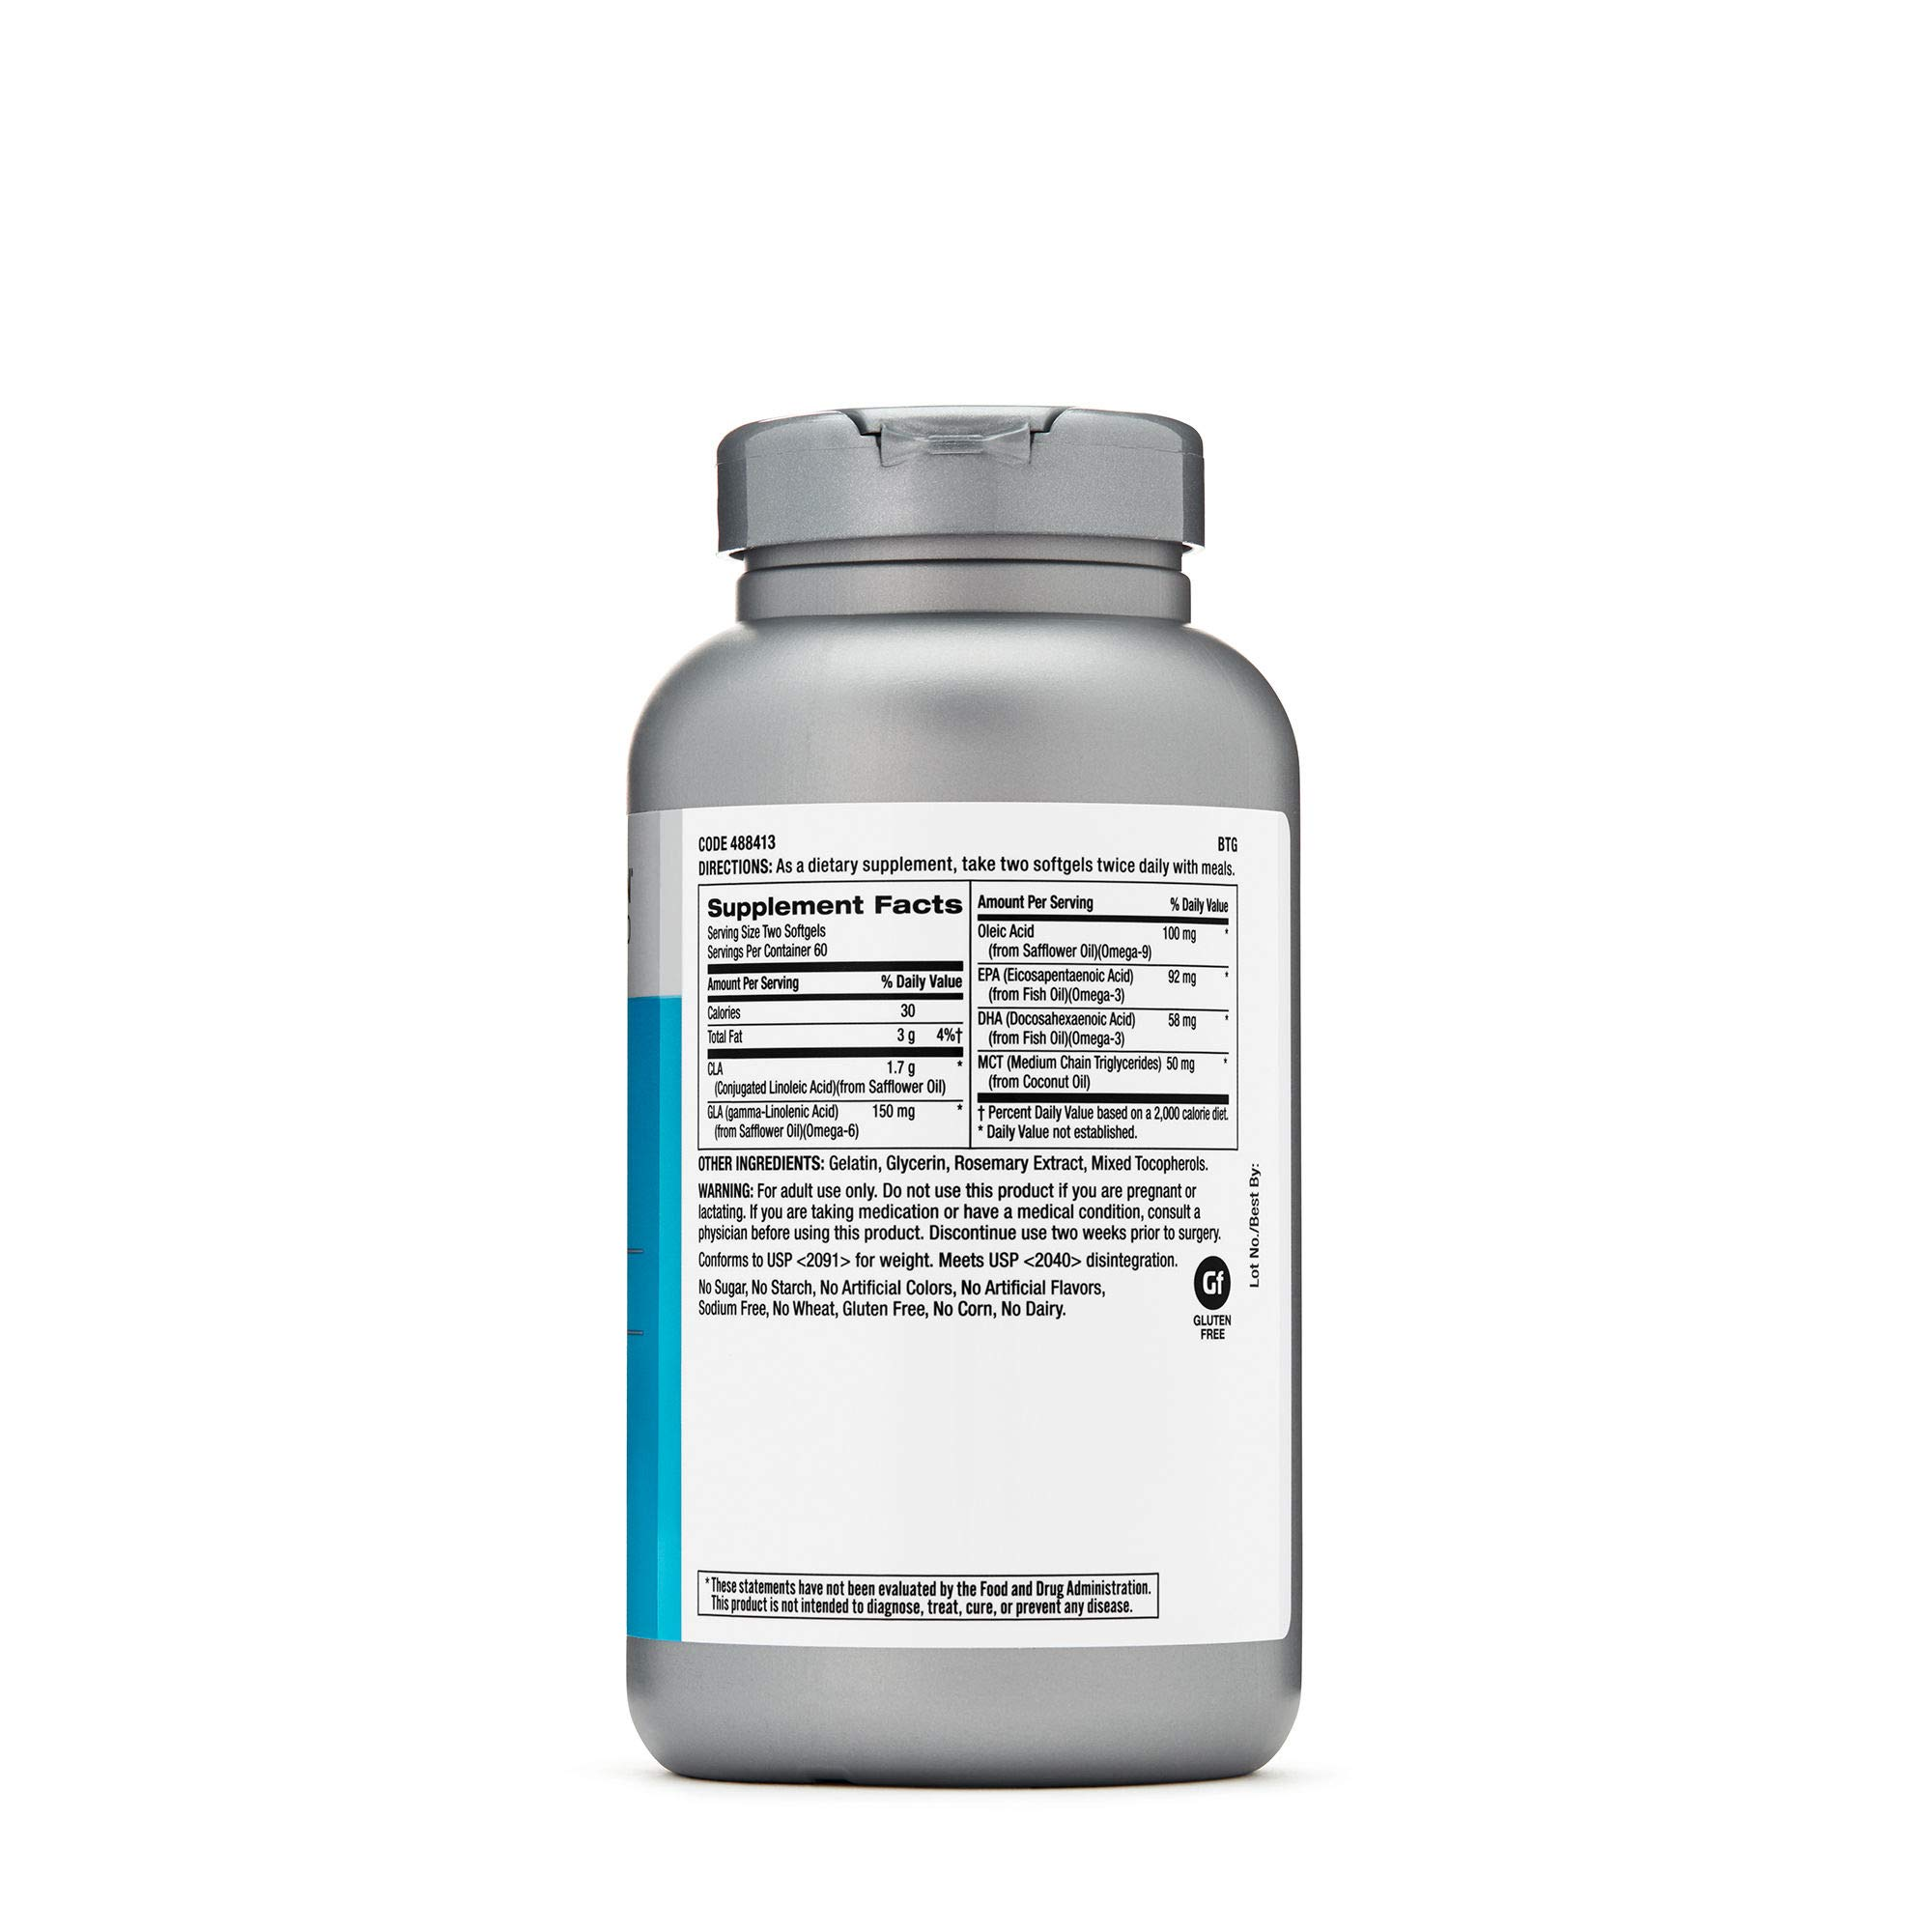 GNC Total Lean Advanced Premium CLA 3-6-9, 120 Softgel Capsules, Supports Exercise and Muscle Recovery by GNC (Image #3)